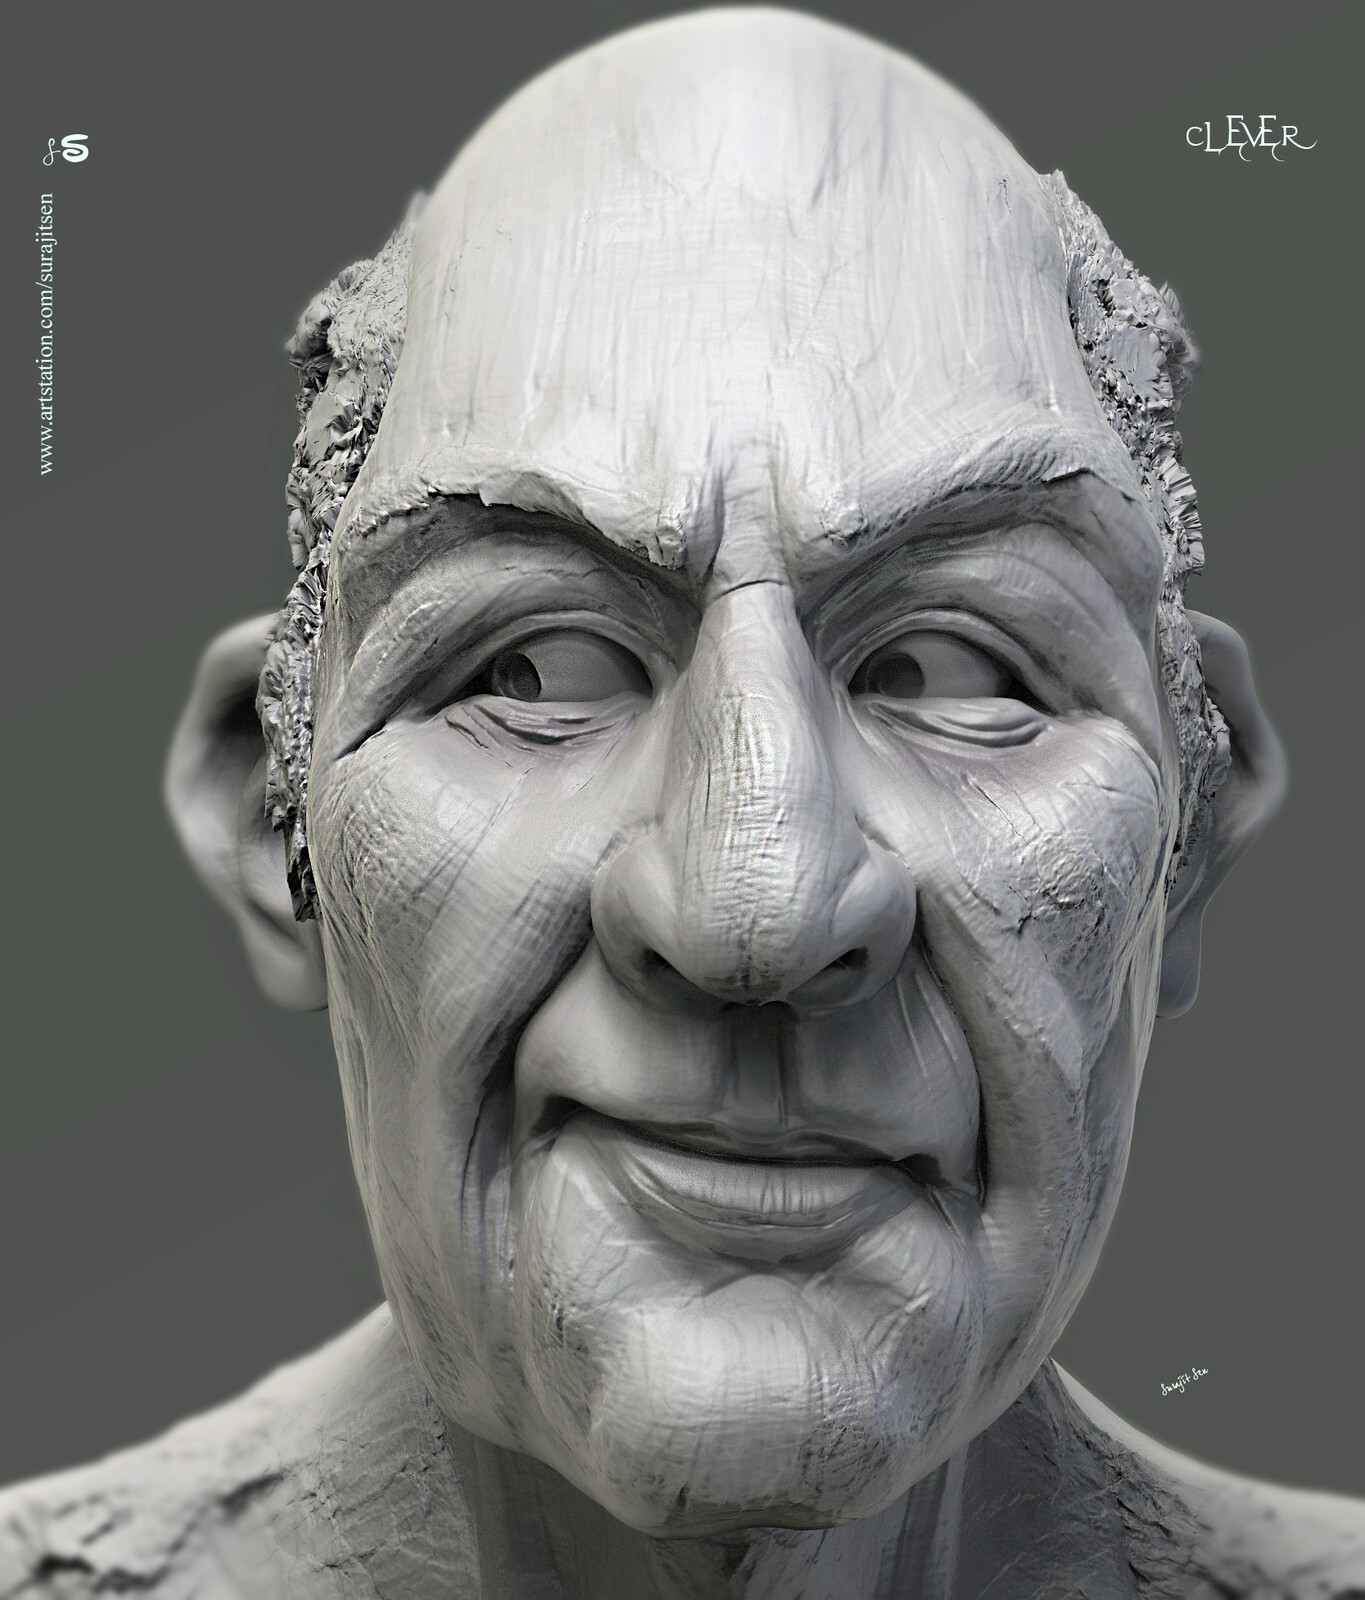 One of my free time speed Digital Sculpture…. Clever. Played with brushes.